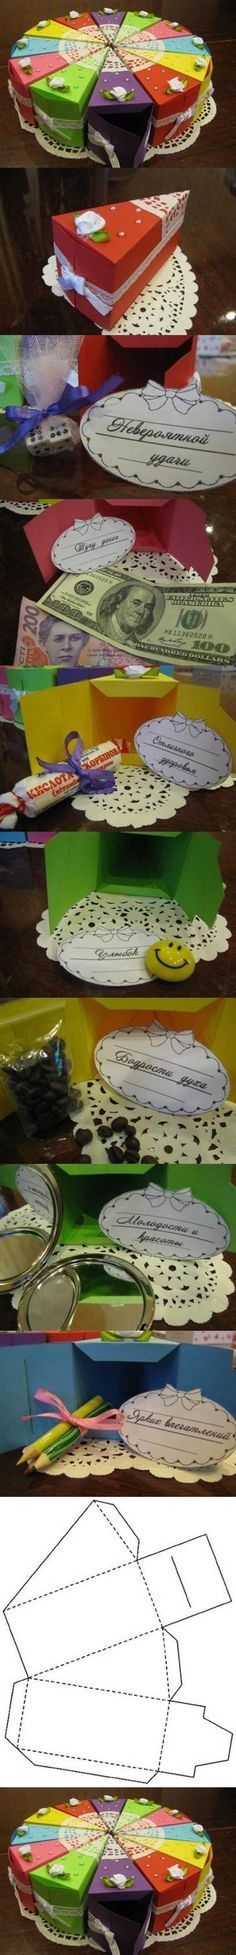 DIY Cake Shaped Gift Boxes | iCreativeIdeas.com Like Us on Facebook ==> https://www.facebook.com/icreativeideas